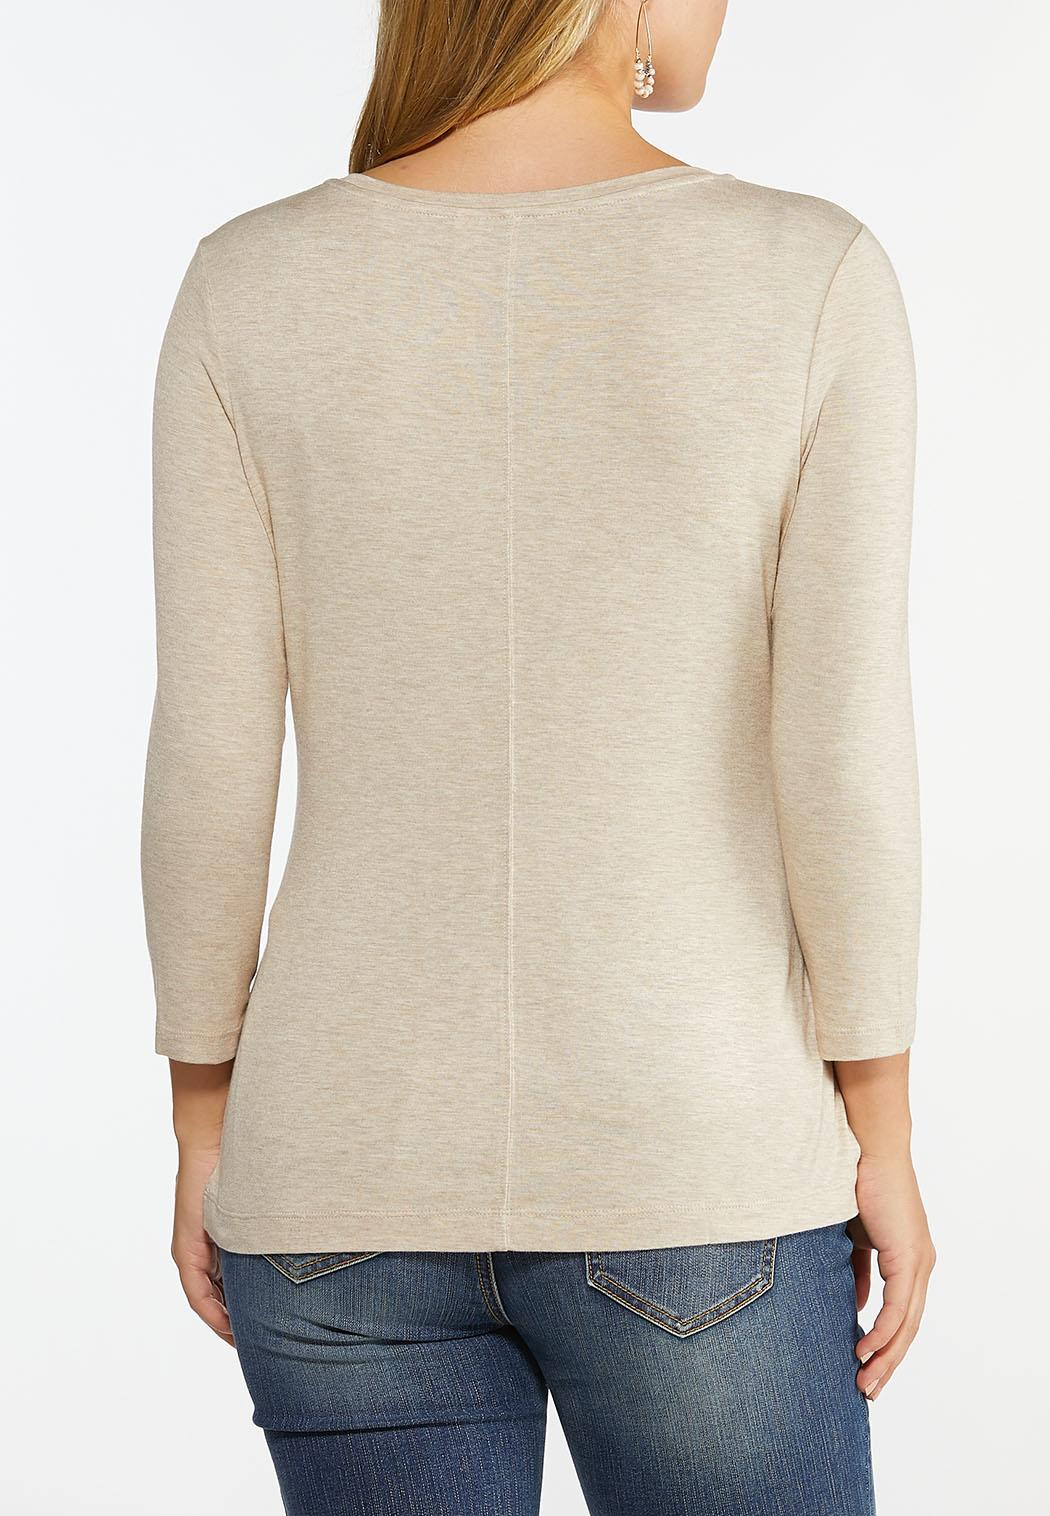 Plus Size Solid Long Sleeve Tee Shirt (Item #44443030)